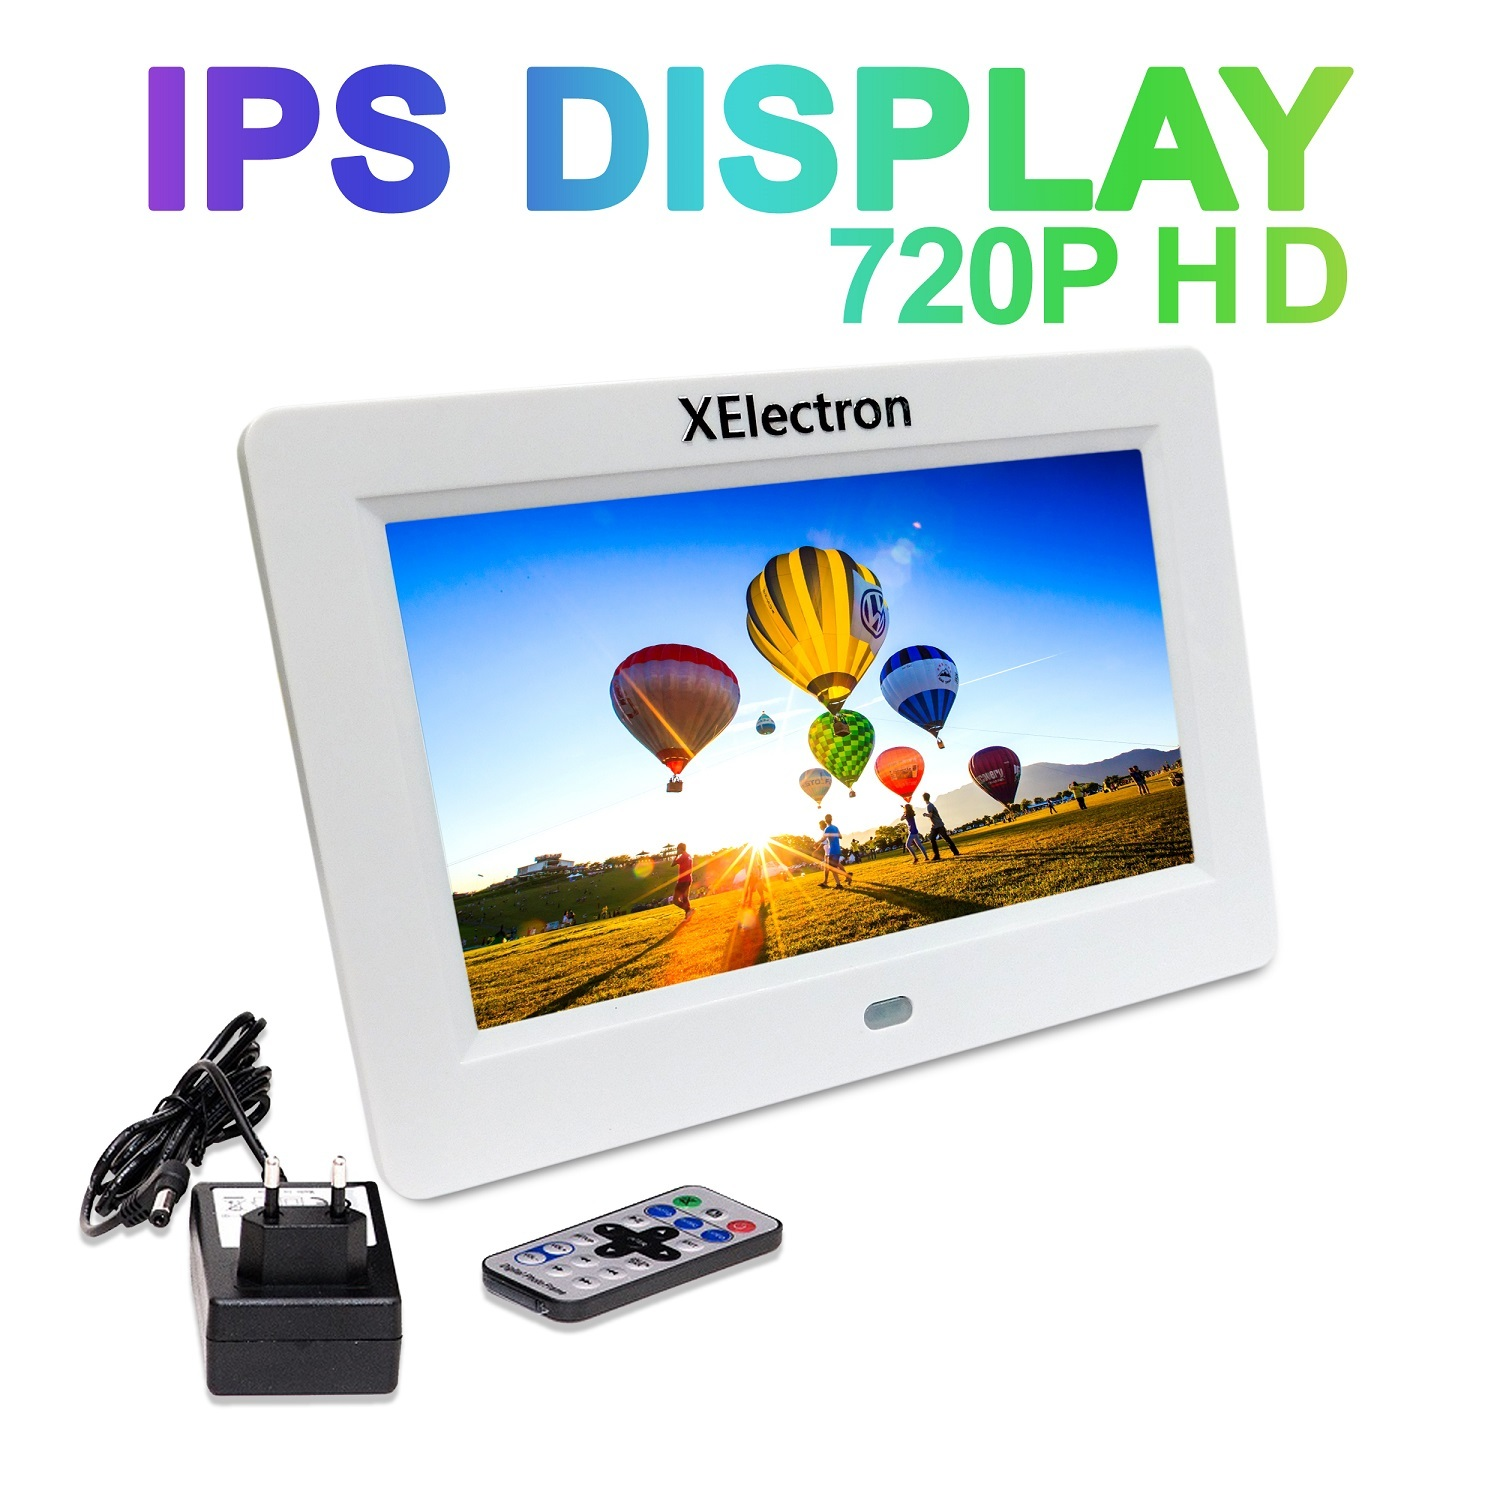 7 inch IPS Display BIS Certified Digital Photo Frame/Video Frame Plays Images, Video & Music